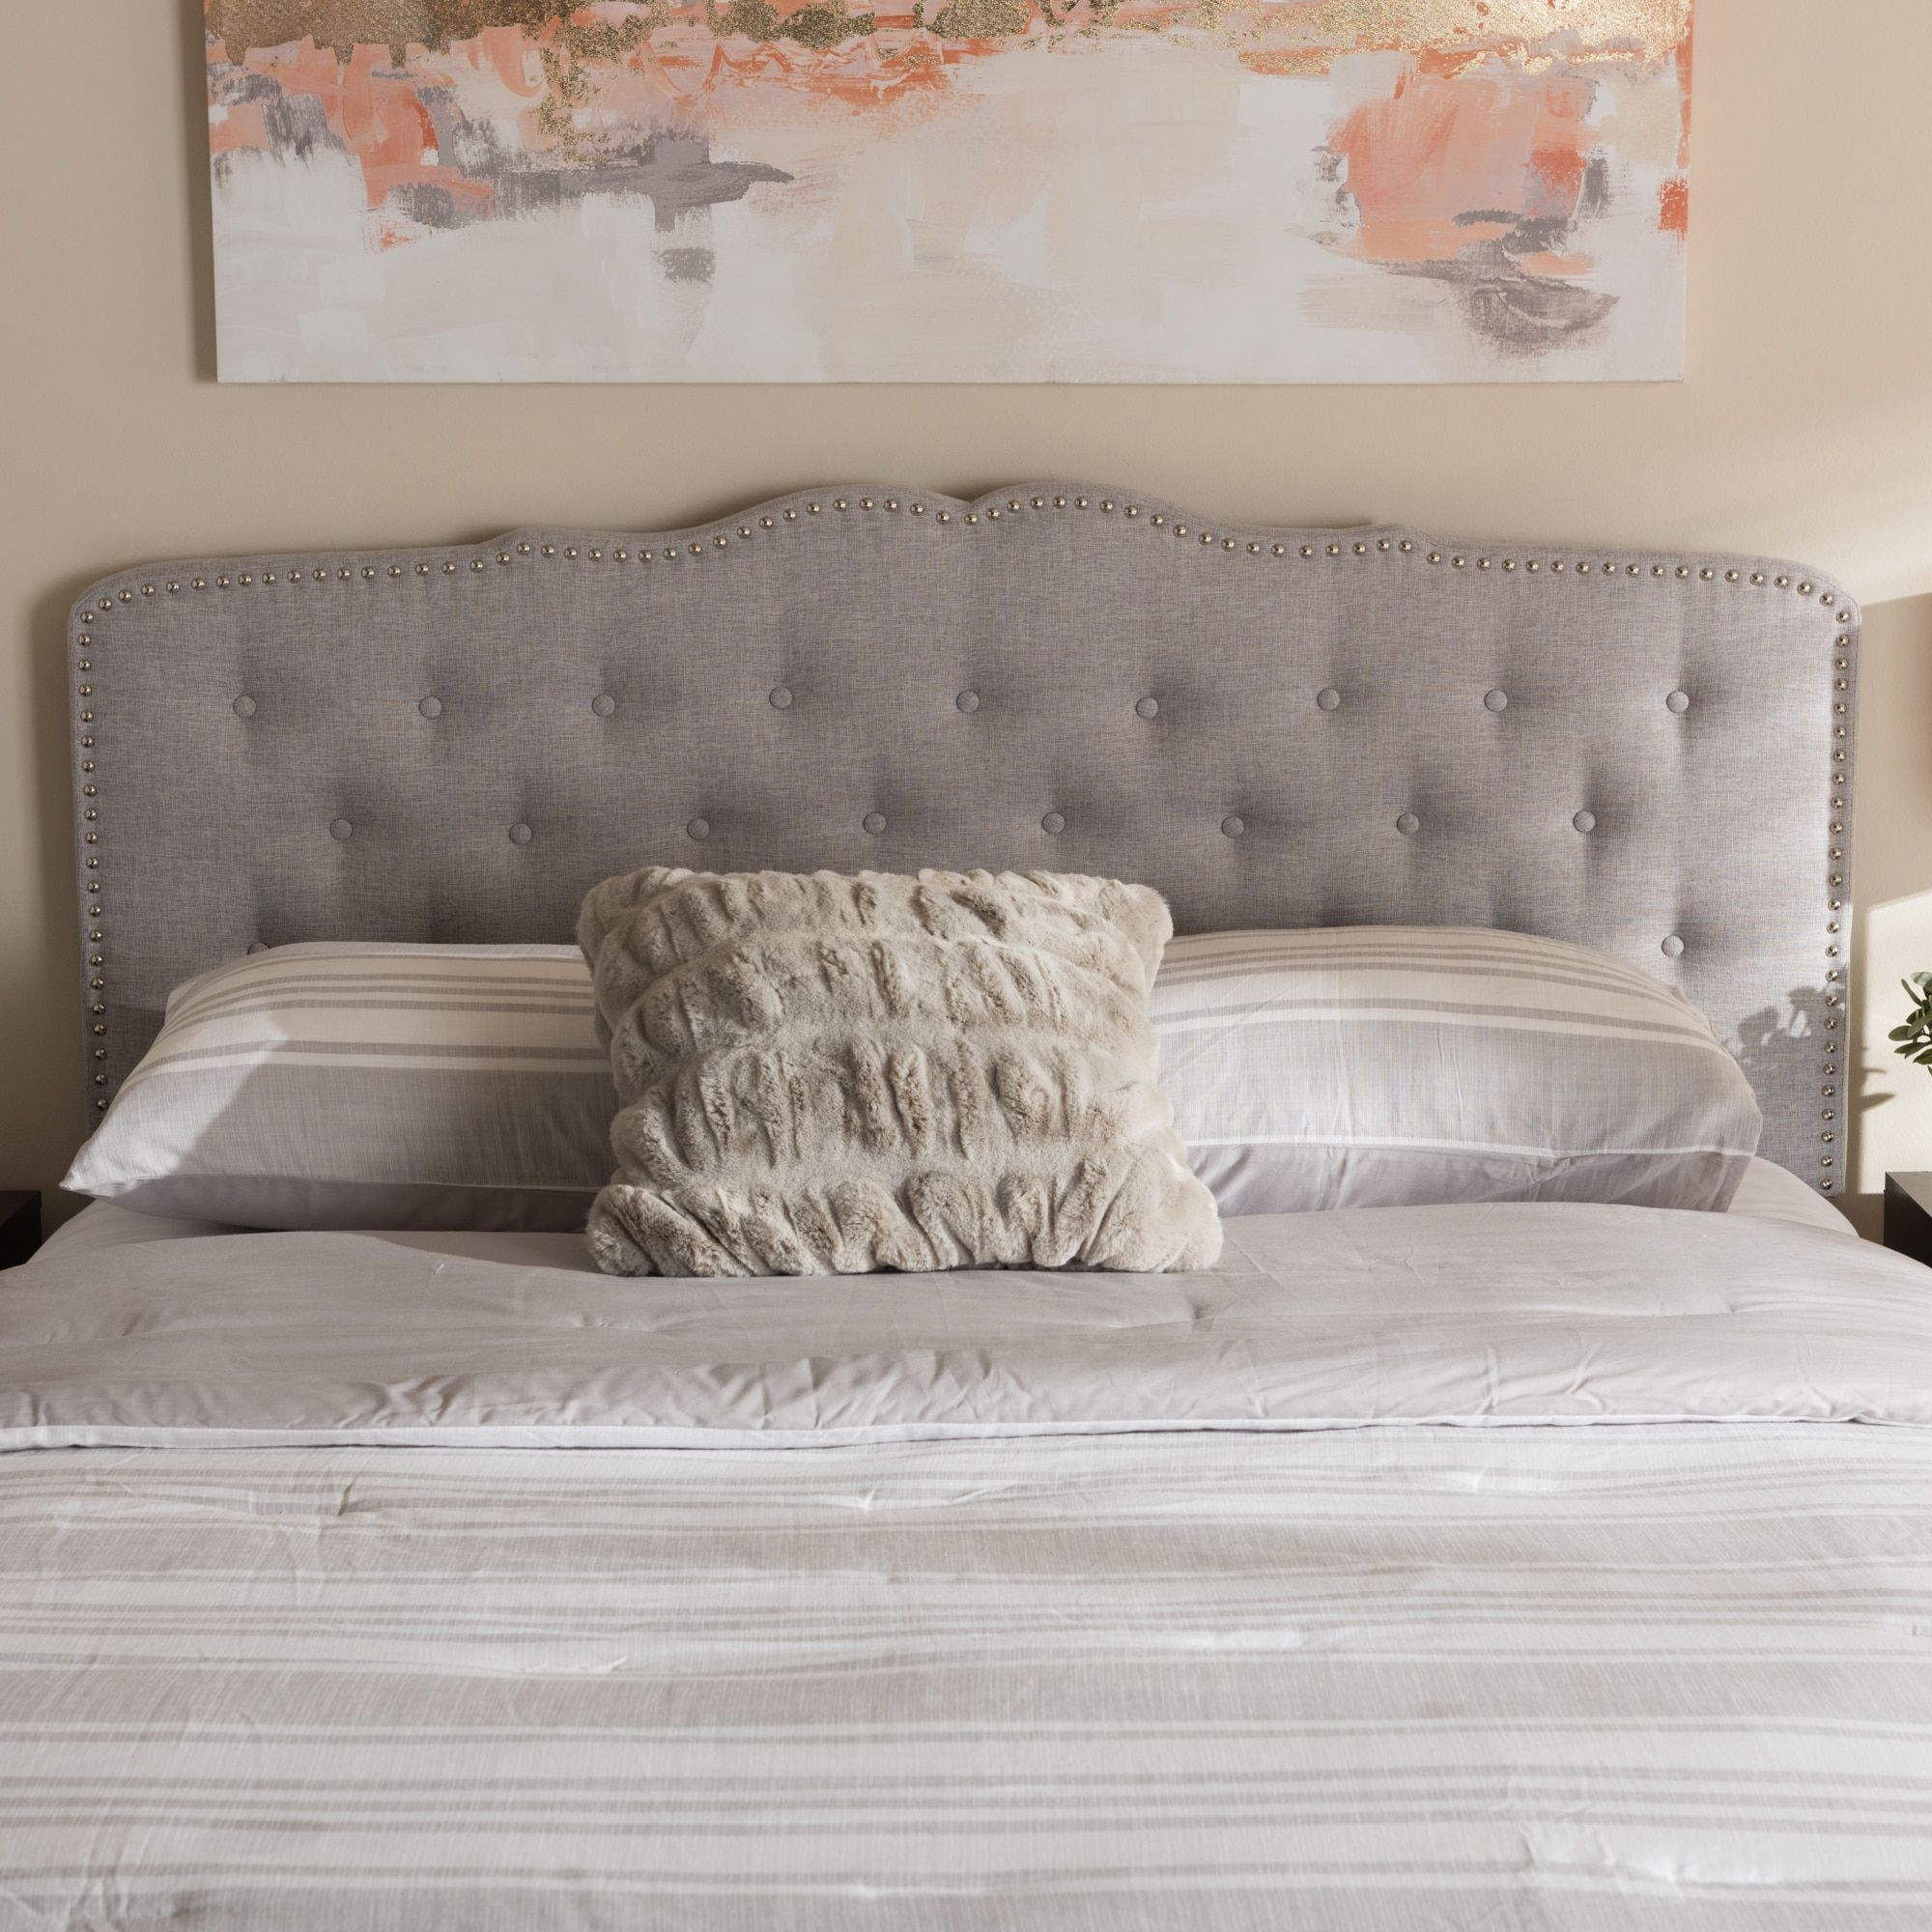 stikwood glam headboard tufted meg skinny tutorial